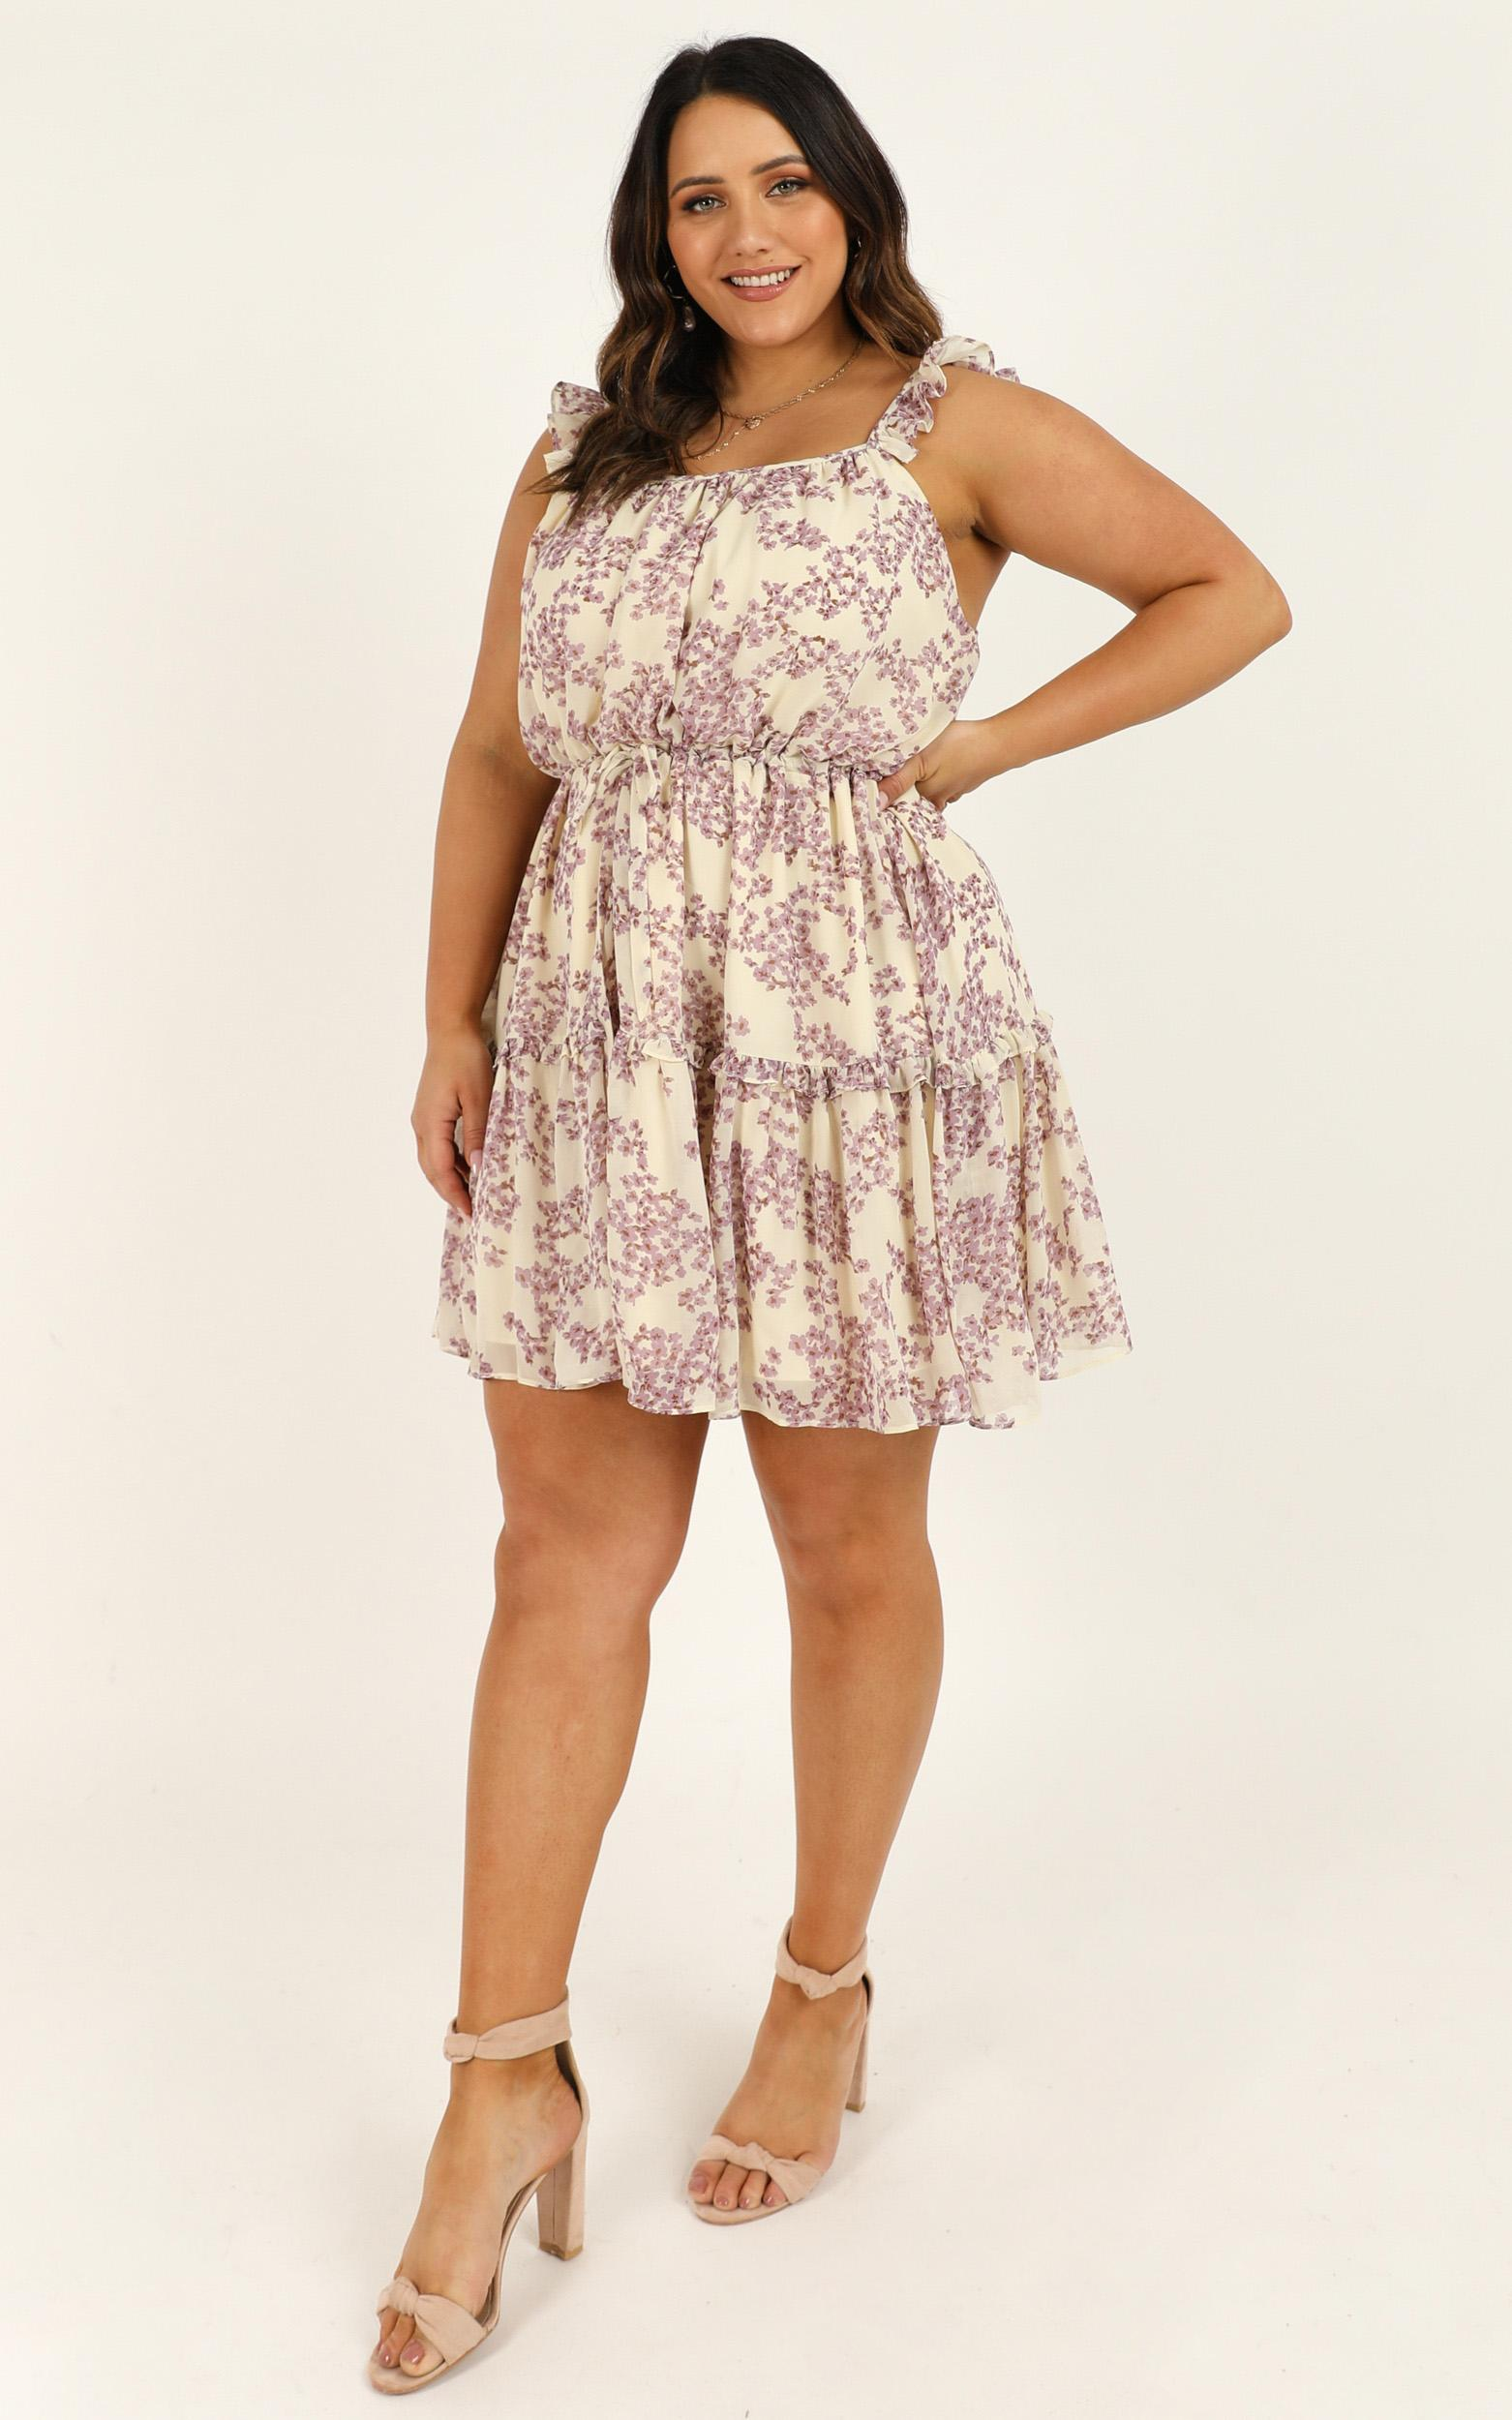 Nothing Tricky Dress in cream floral - 20 (XXXXL), Cream, hi-res image number null